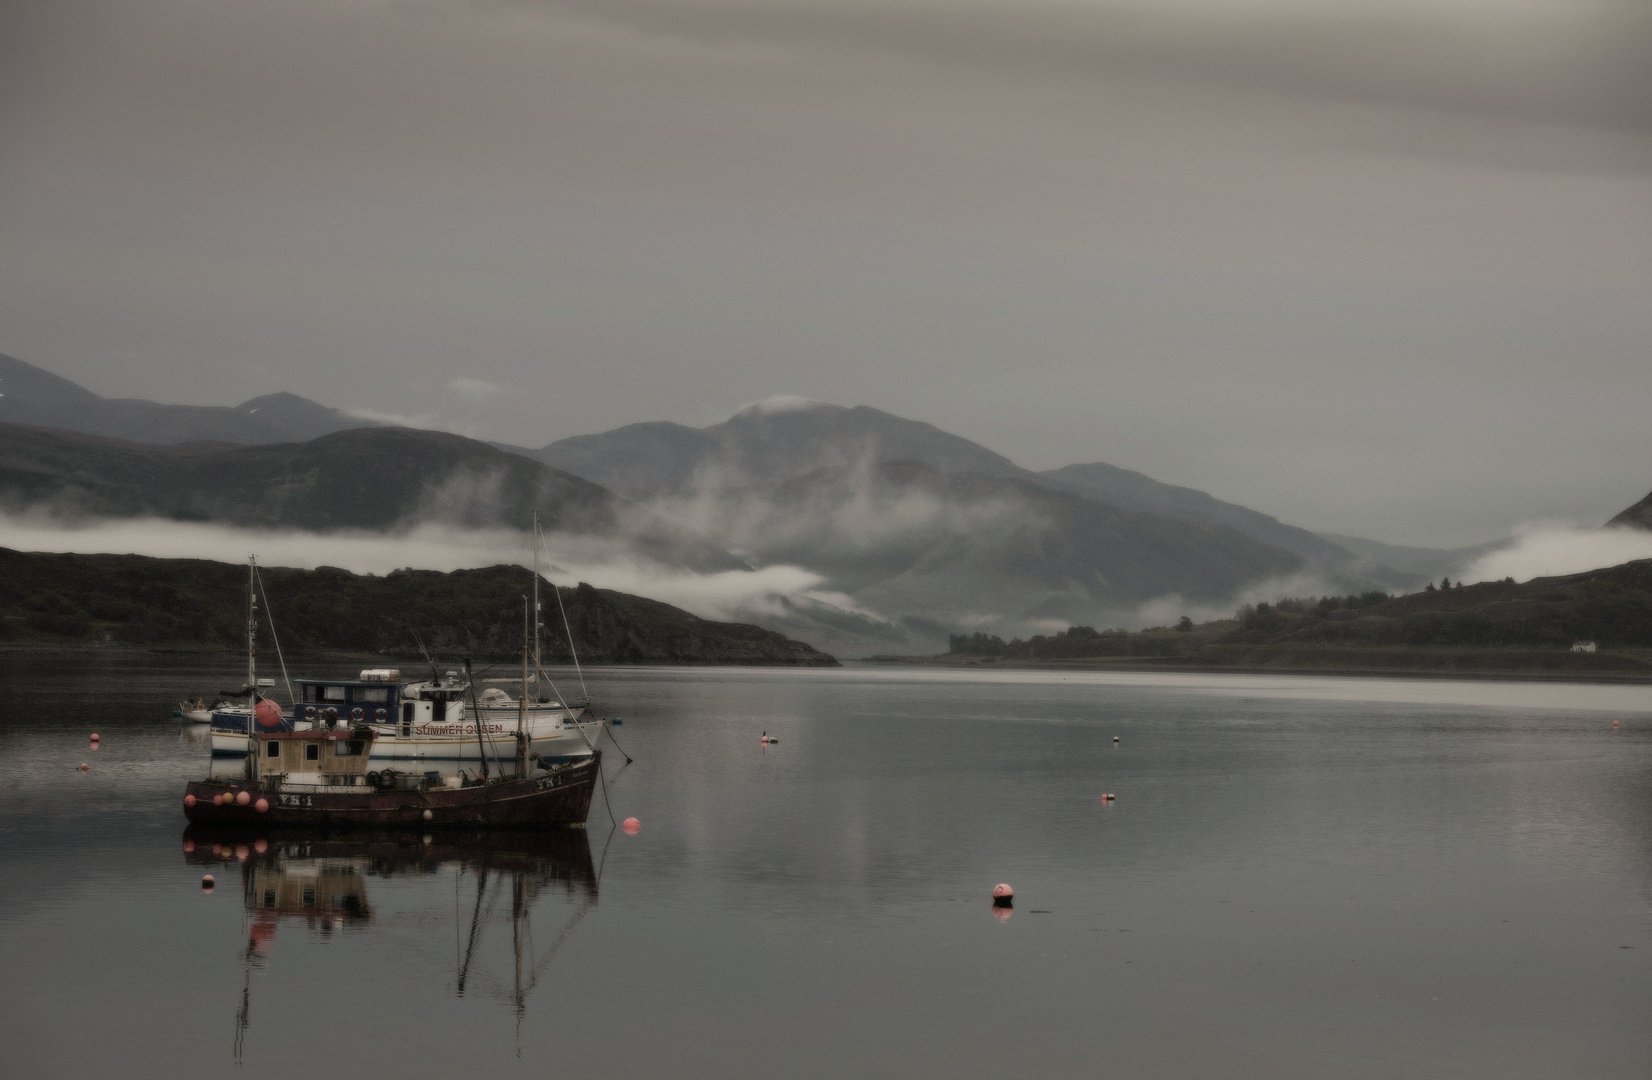 Morgens in Ullapool